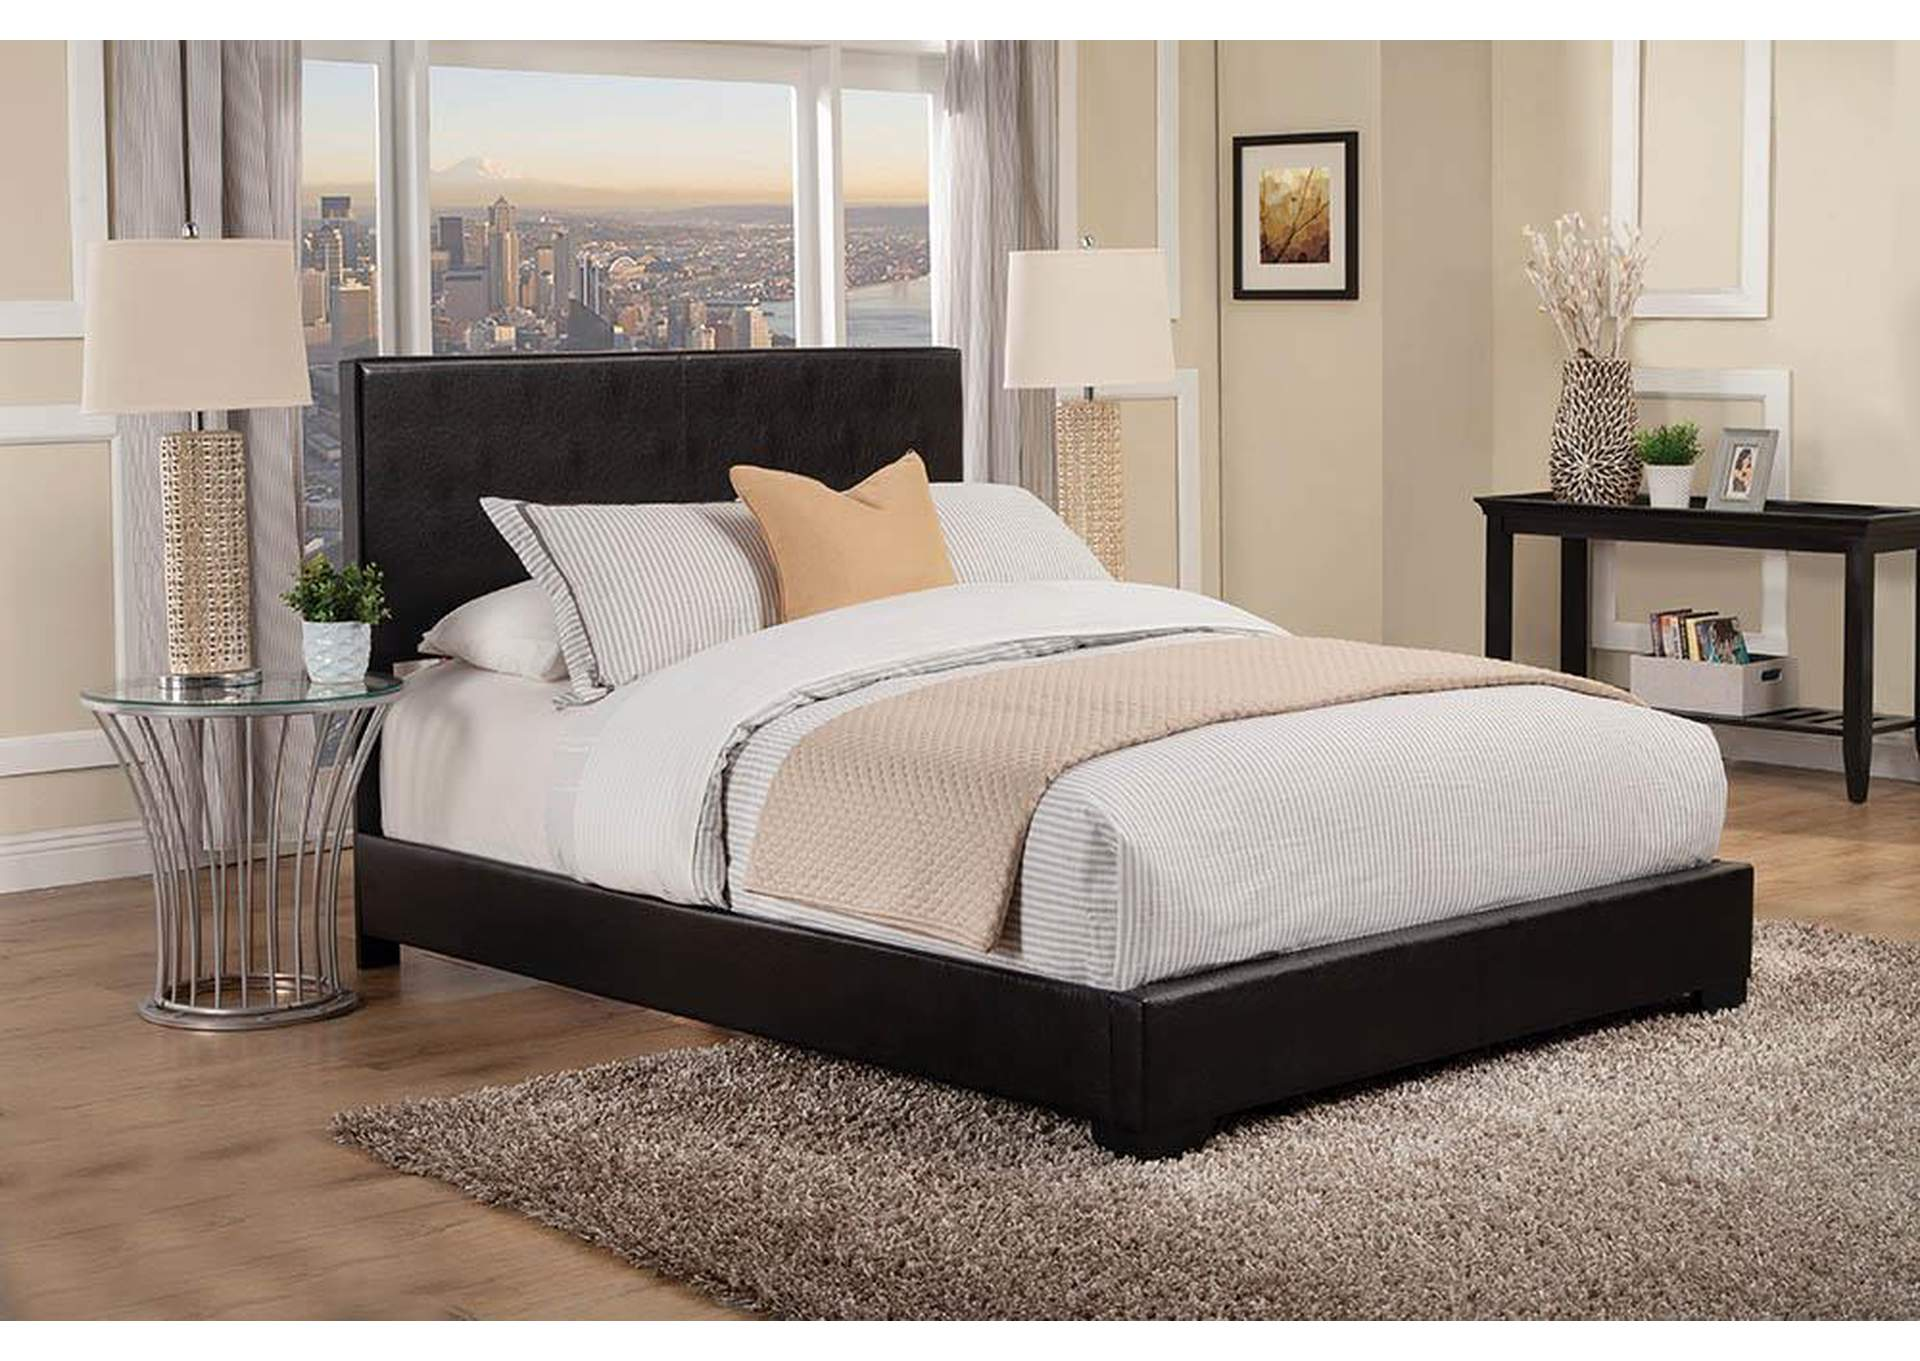 Conner Black & Black Queen Bed,Coaster Furniture